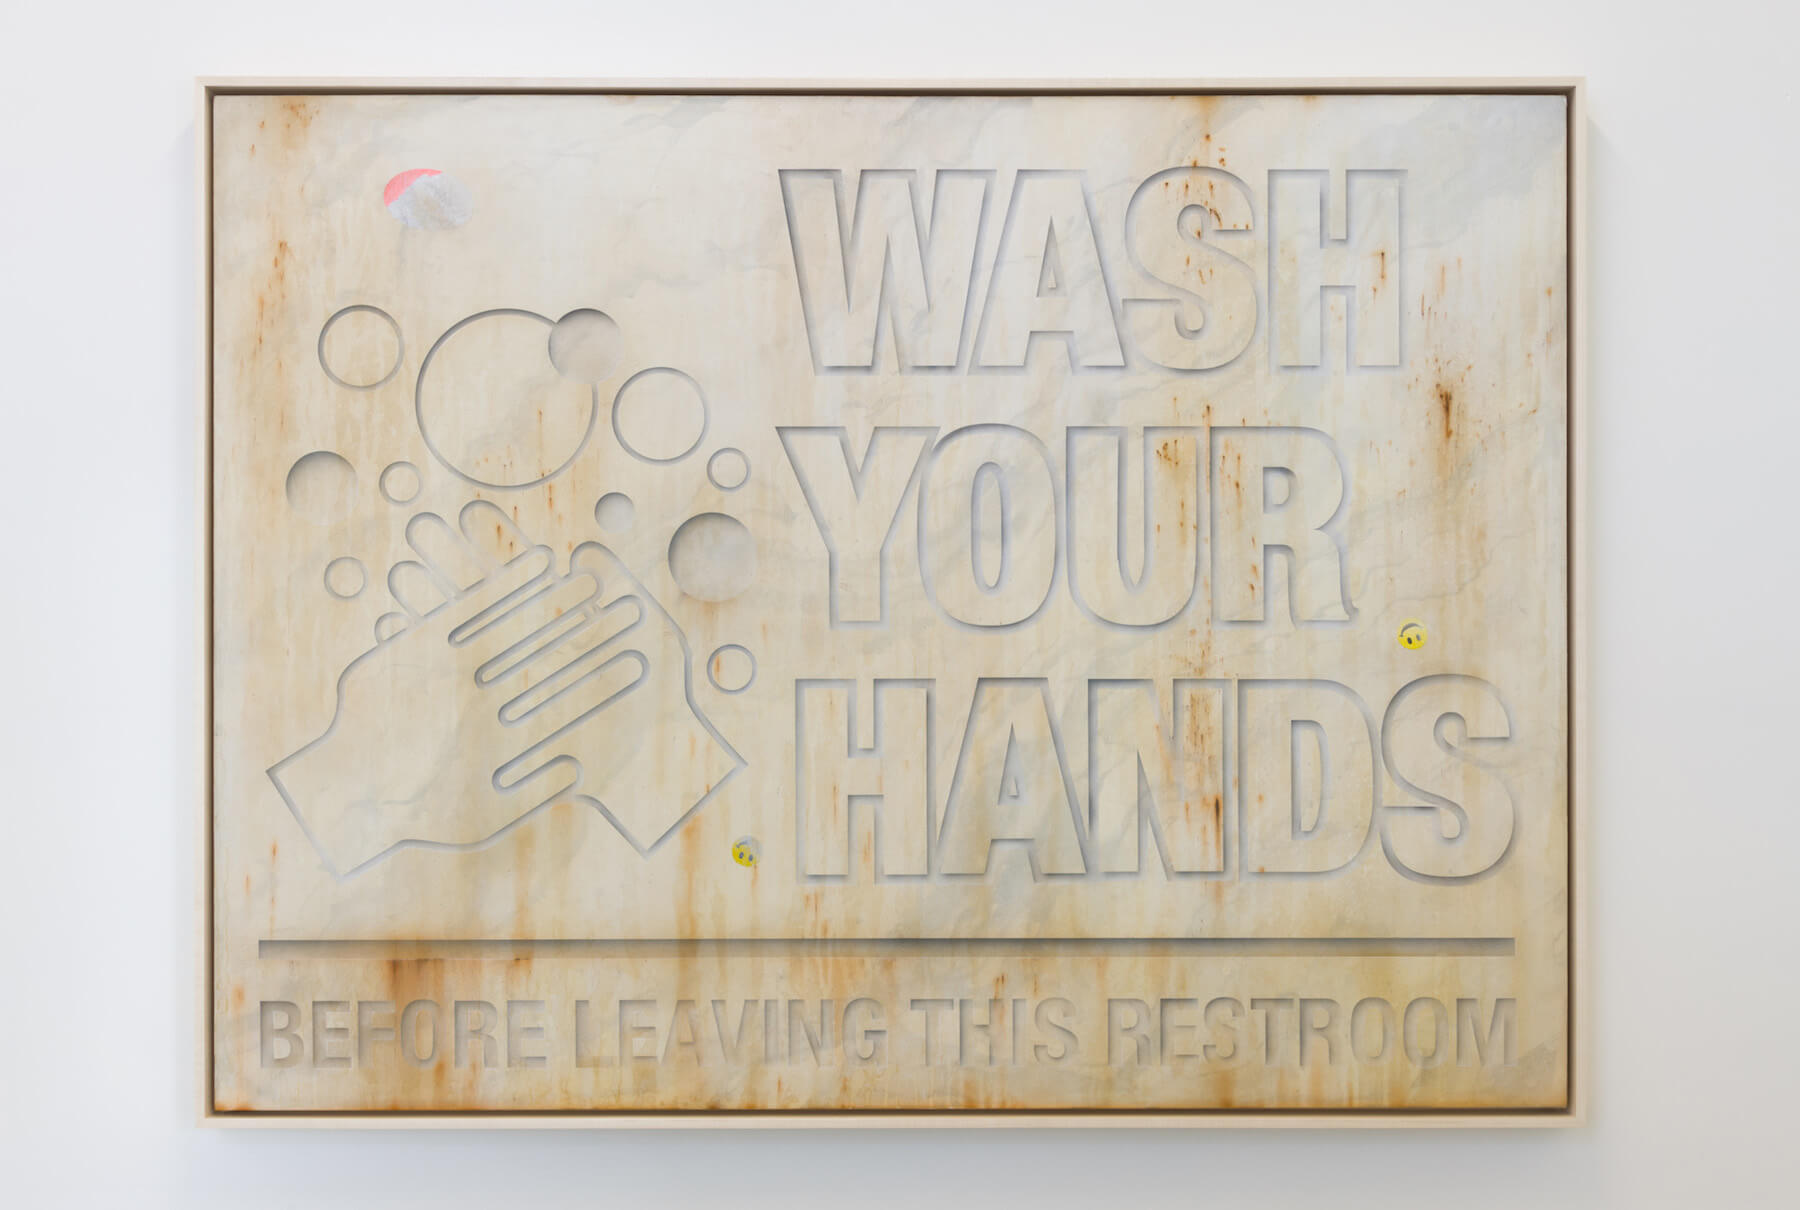 Gomez, Wash Your Hands Carrara Marble, 2017 (SG 17.029) A